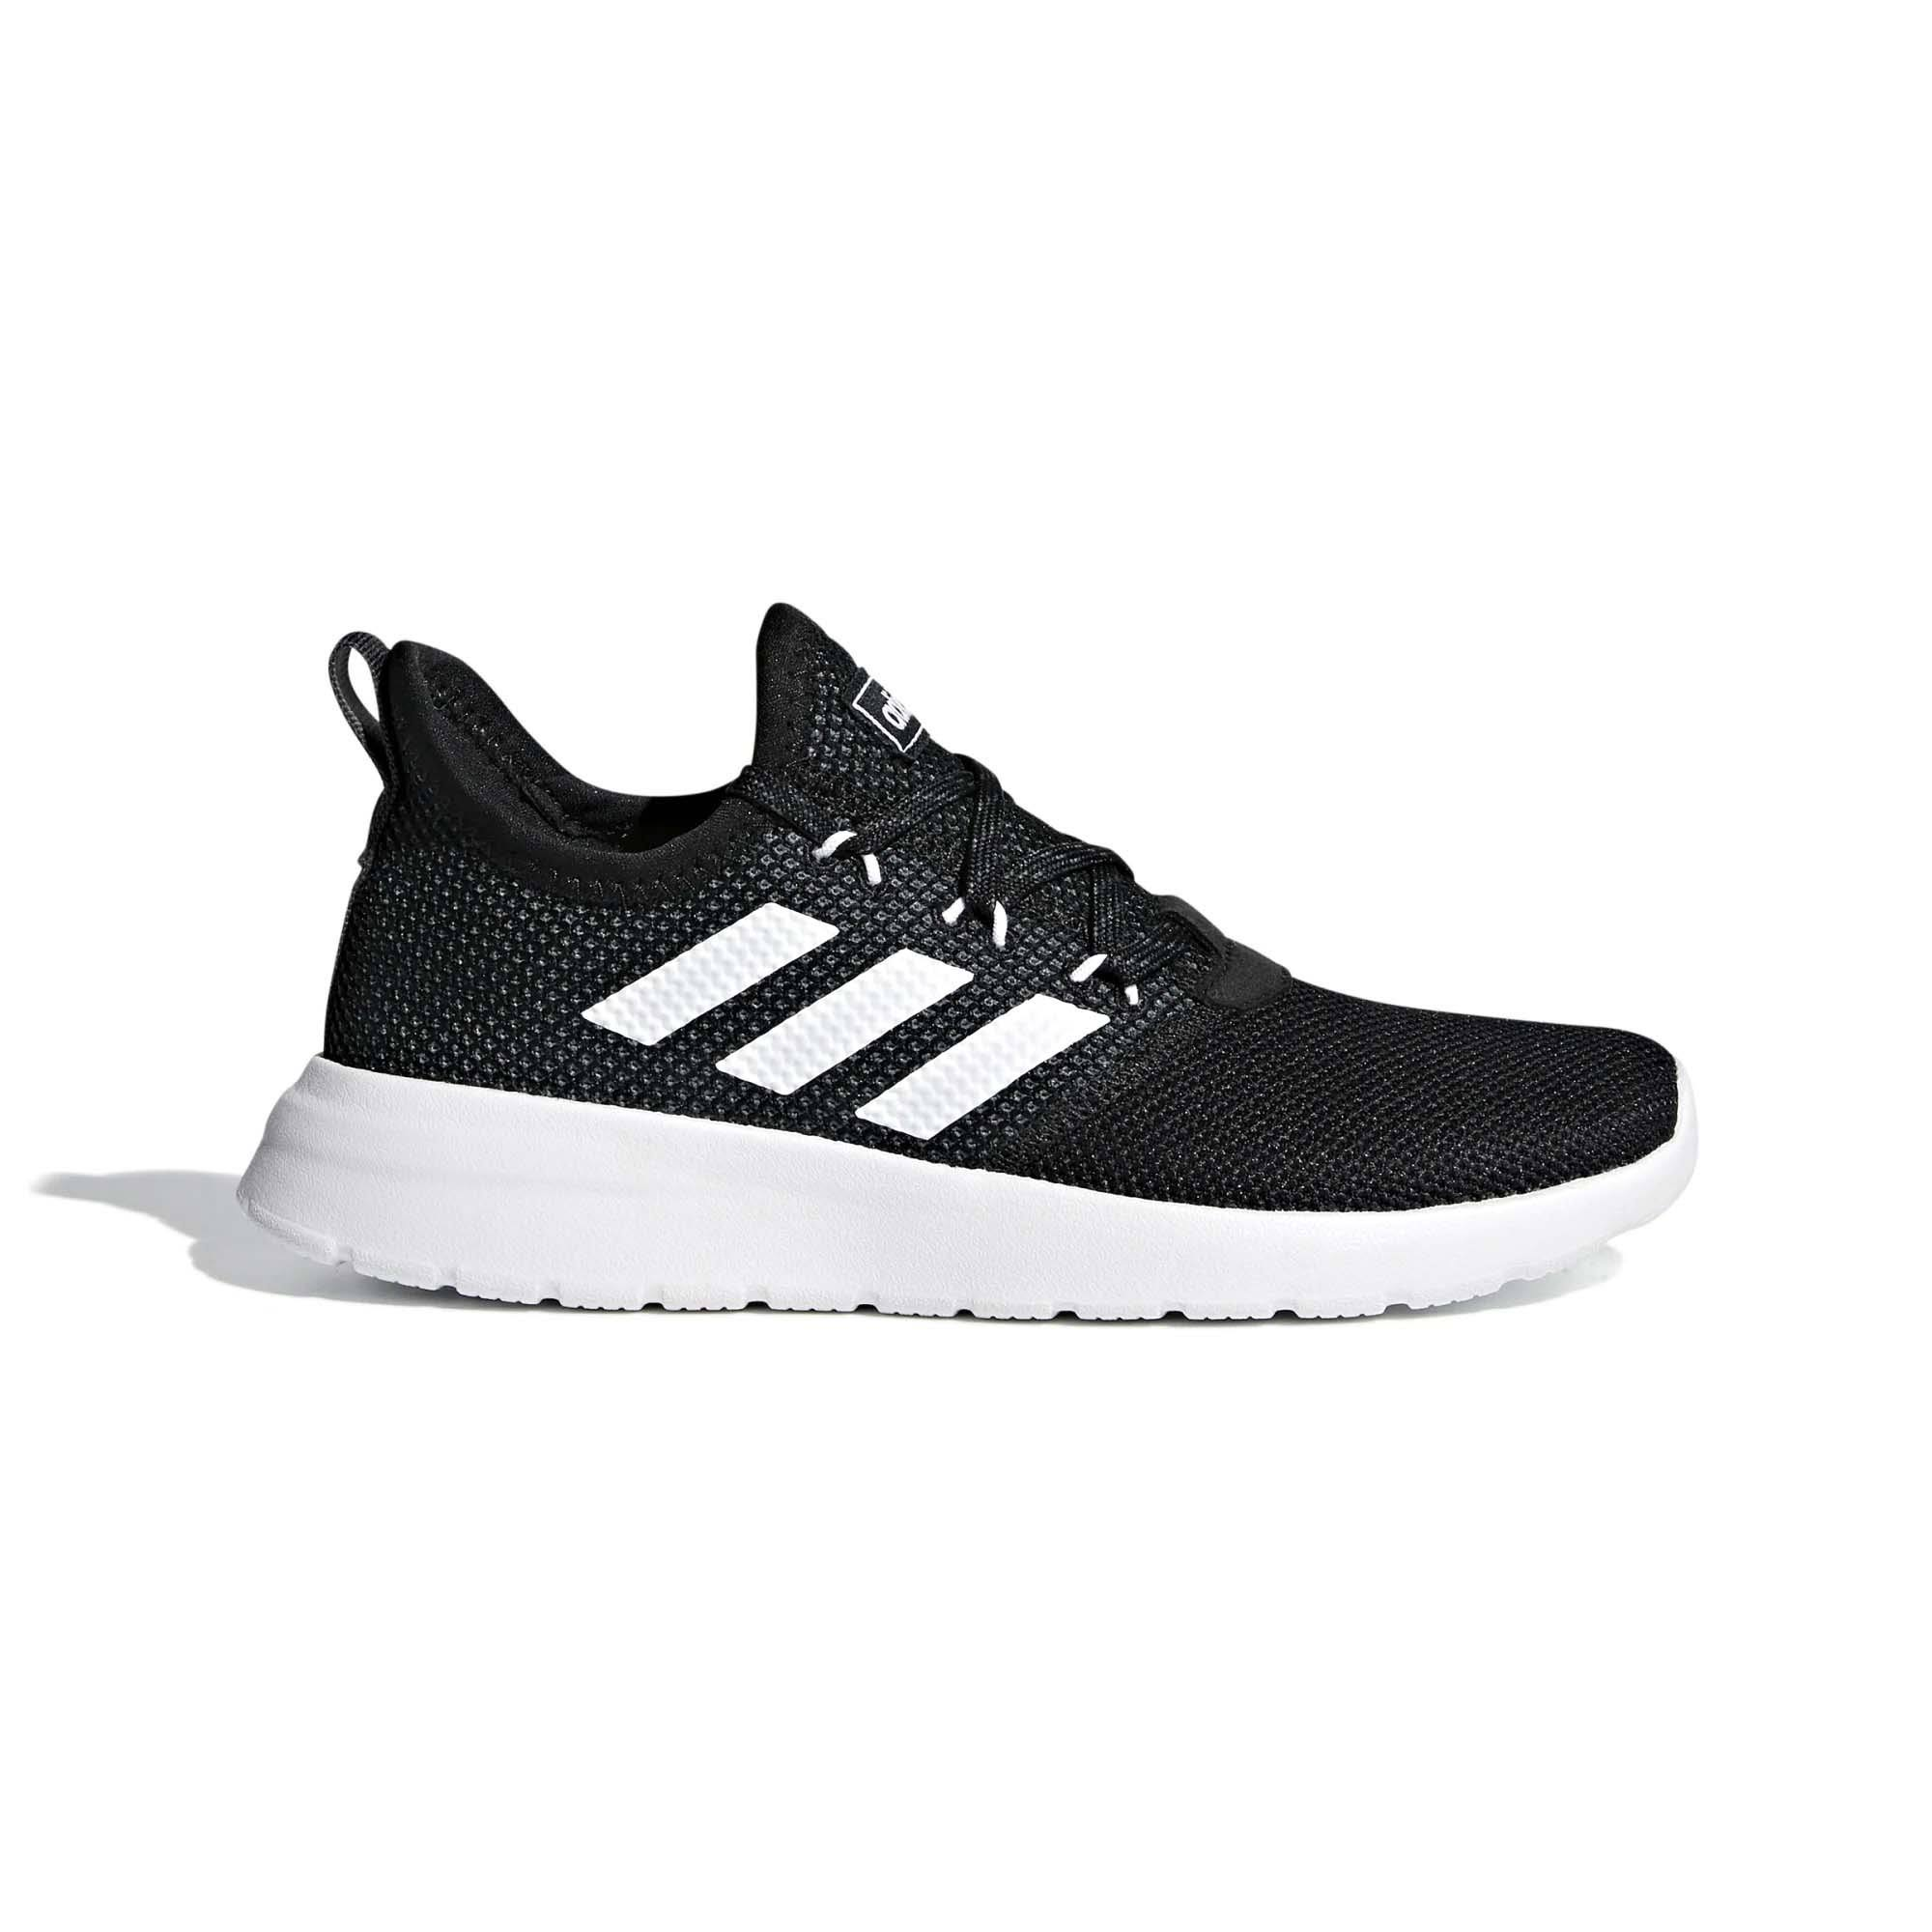 Adidas Lite Racer RBN Shoes Running - Black - Kids